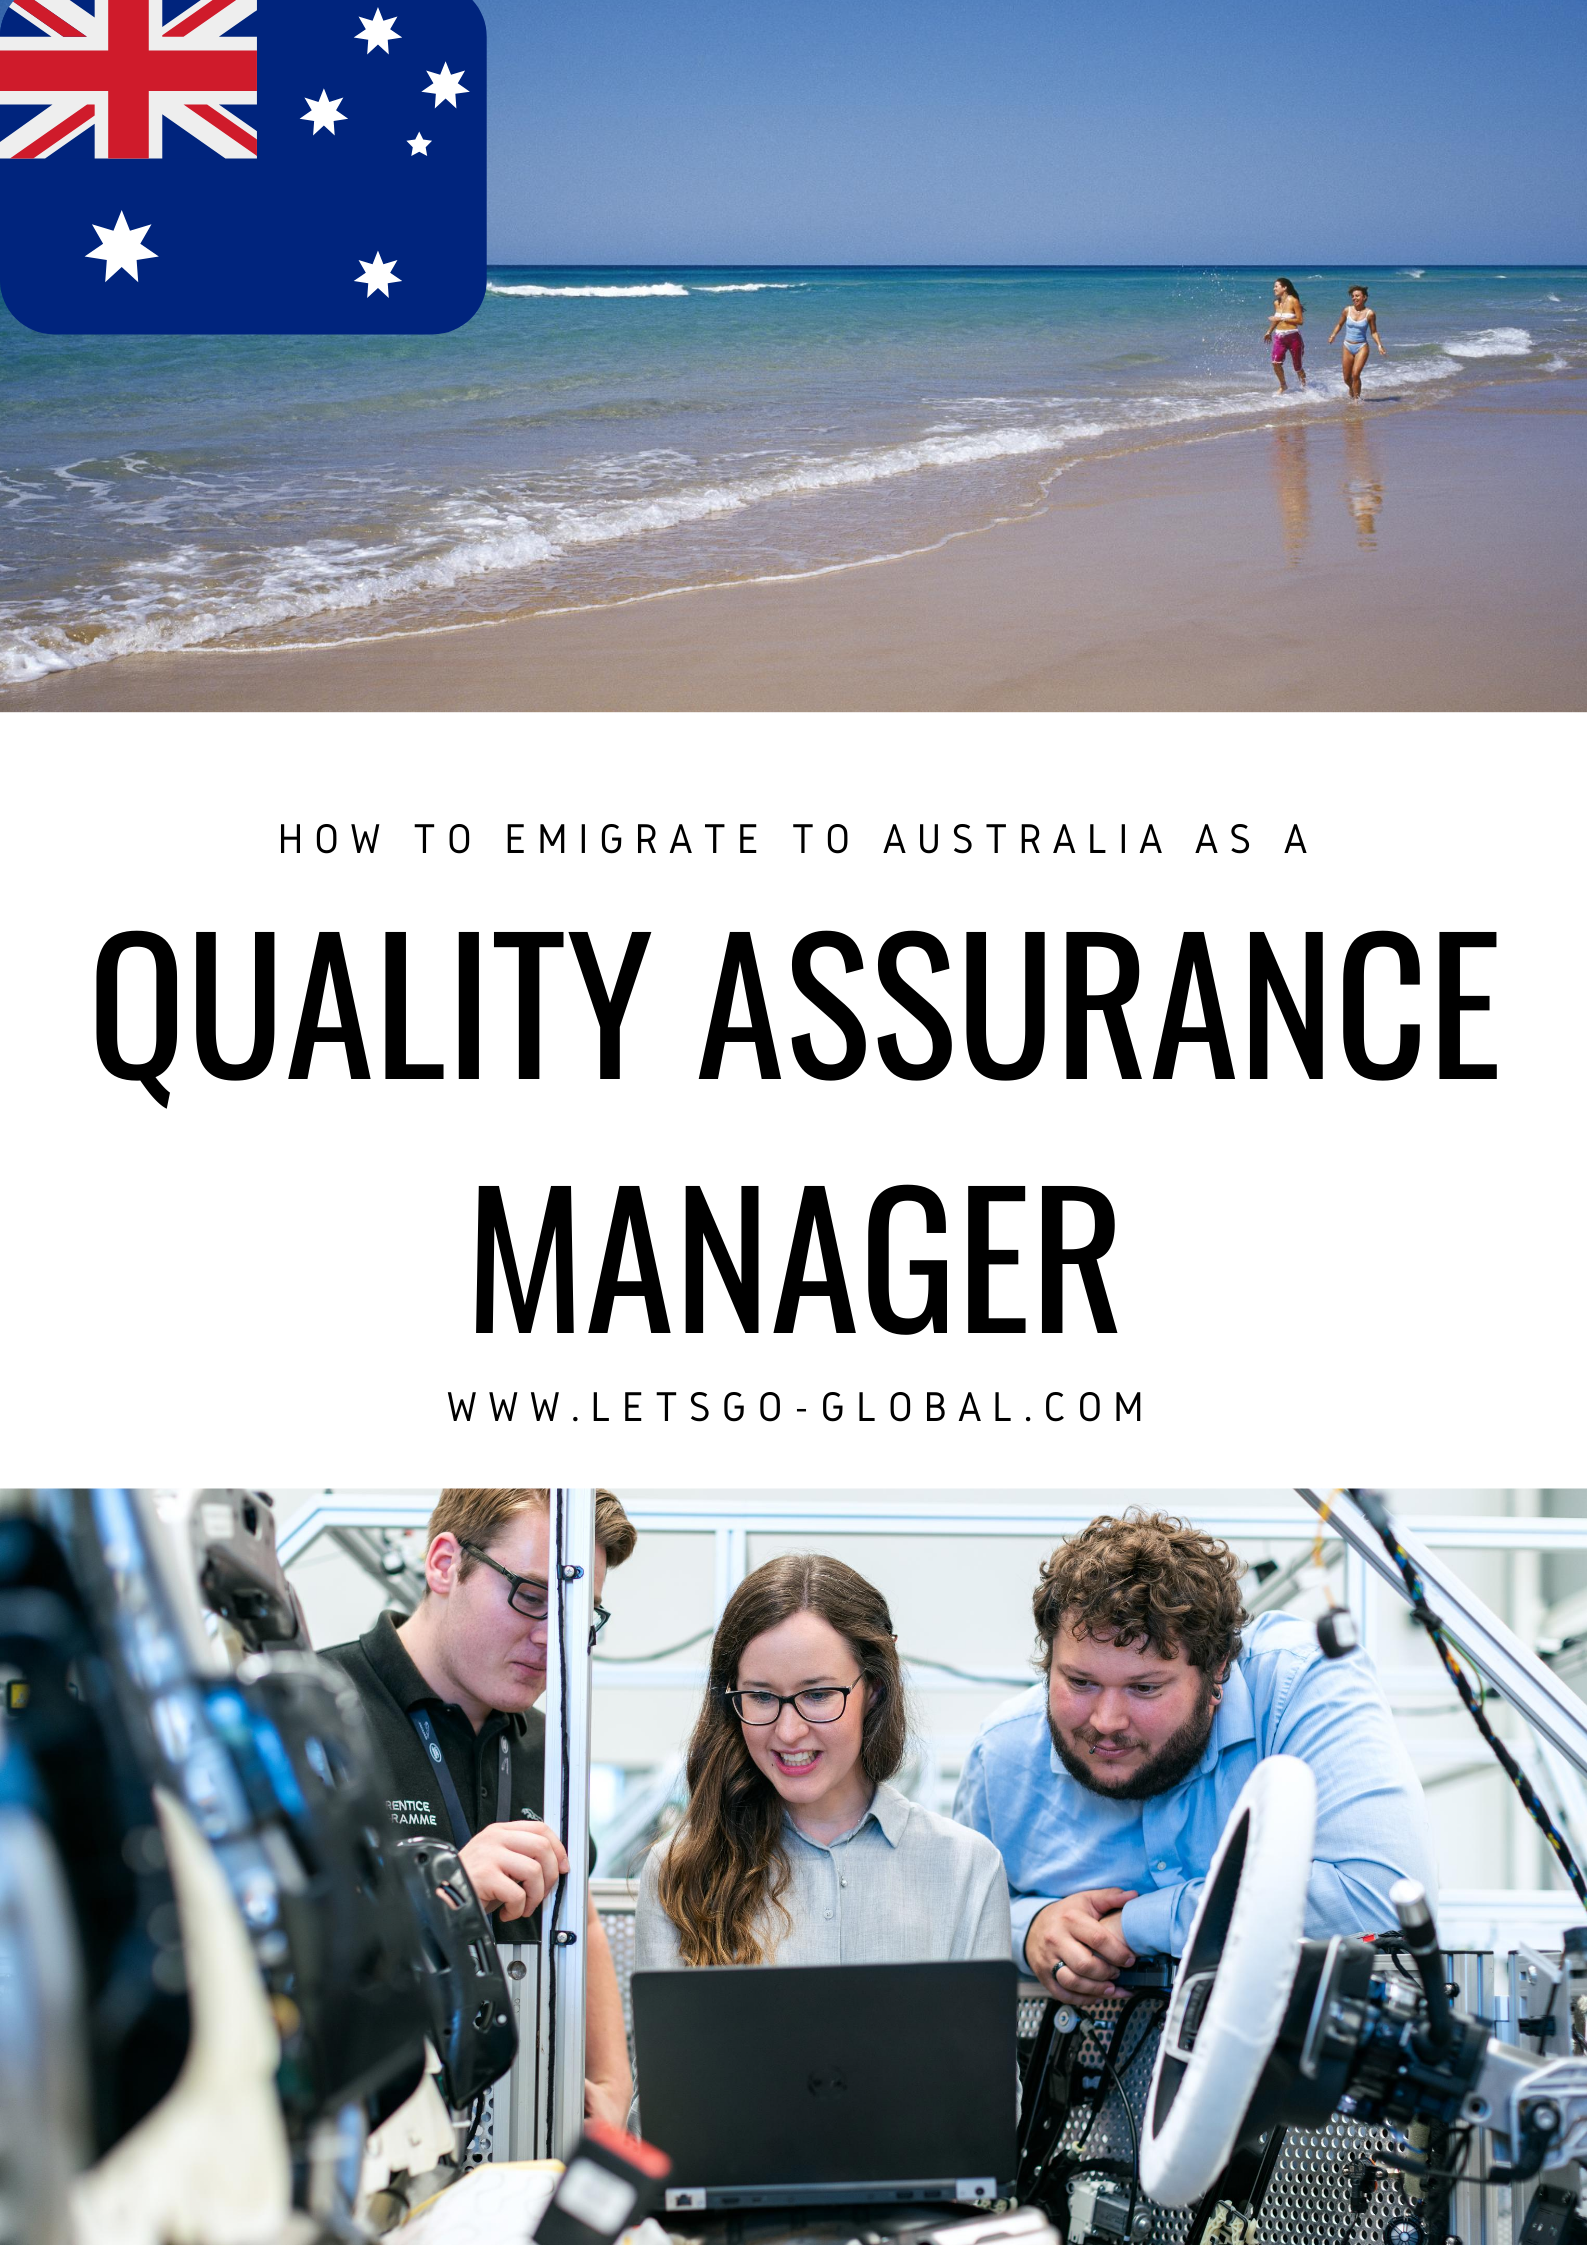 Migrate to Australia as a Quality Assurance Manager